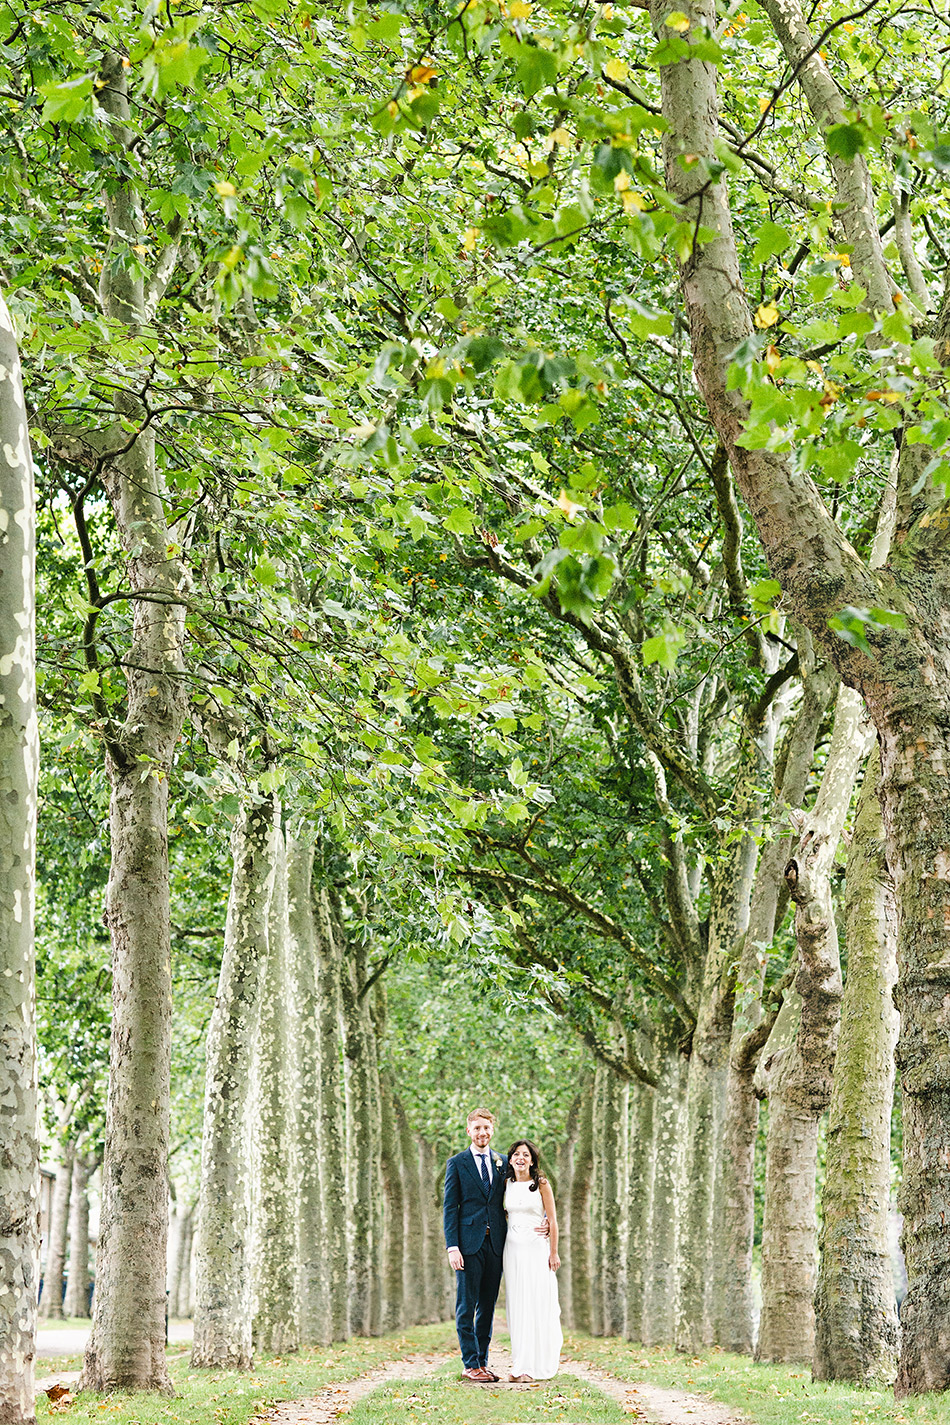 creative wedding photographer cool city garden field wedding london brisbane 002